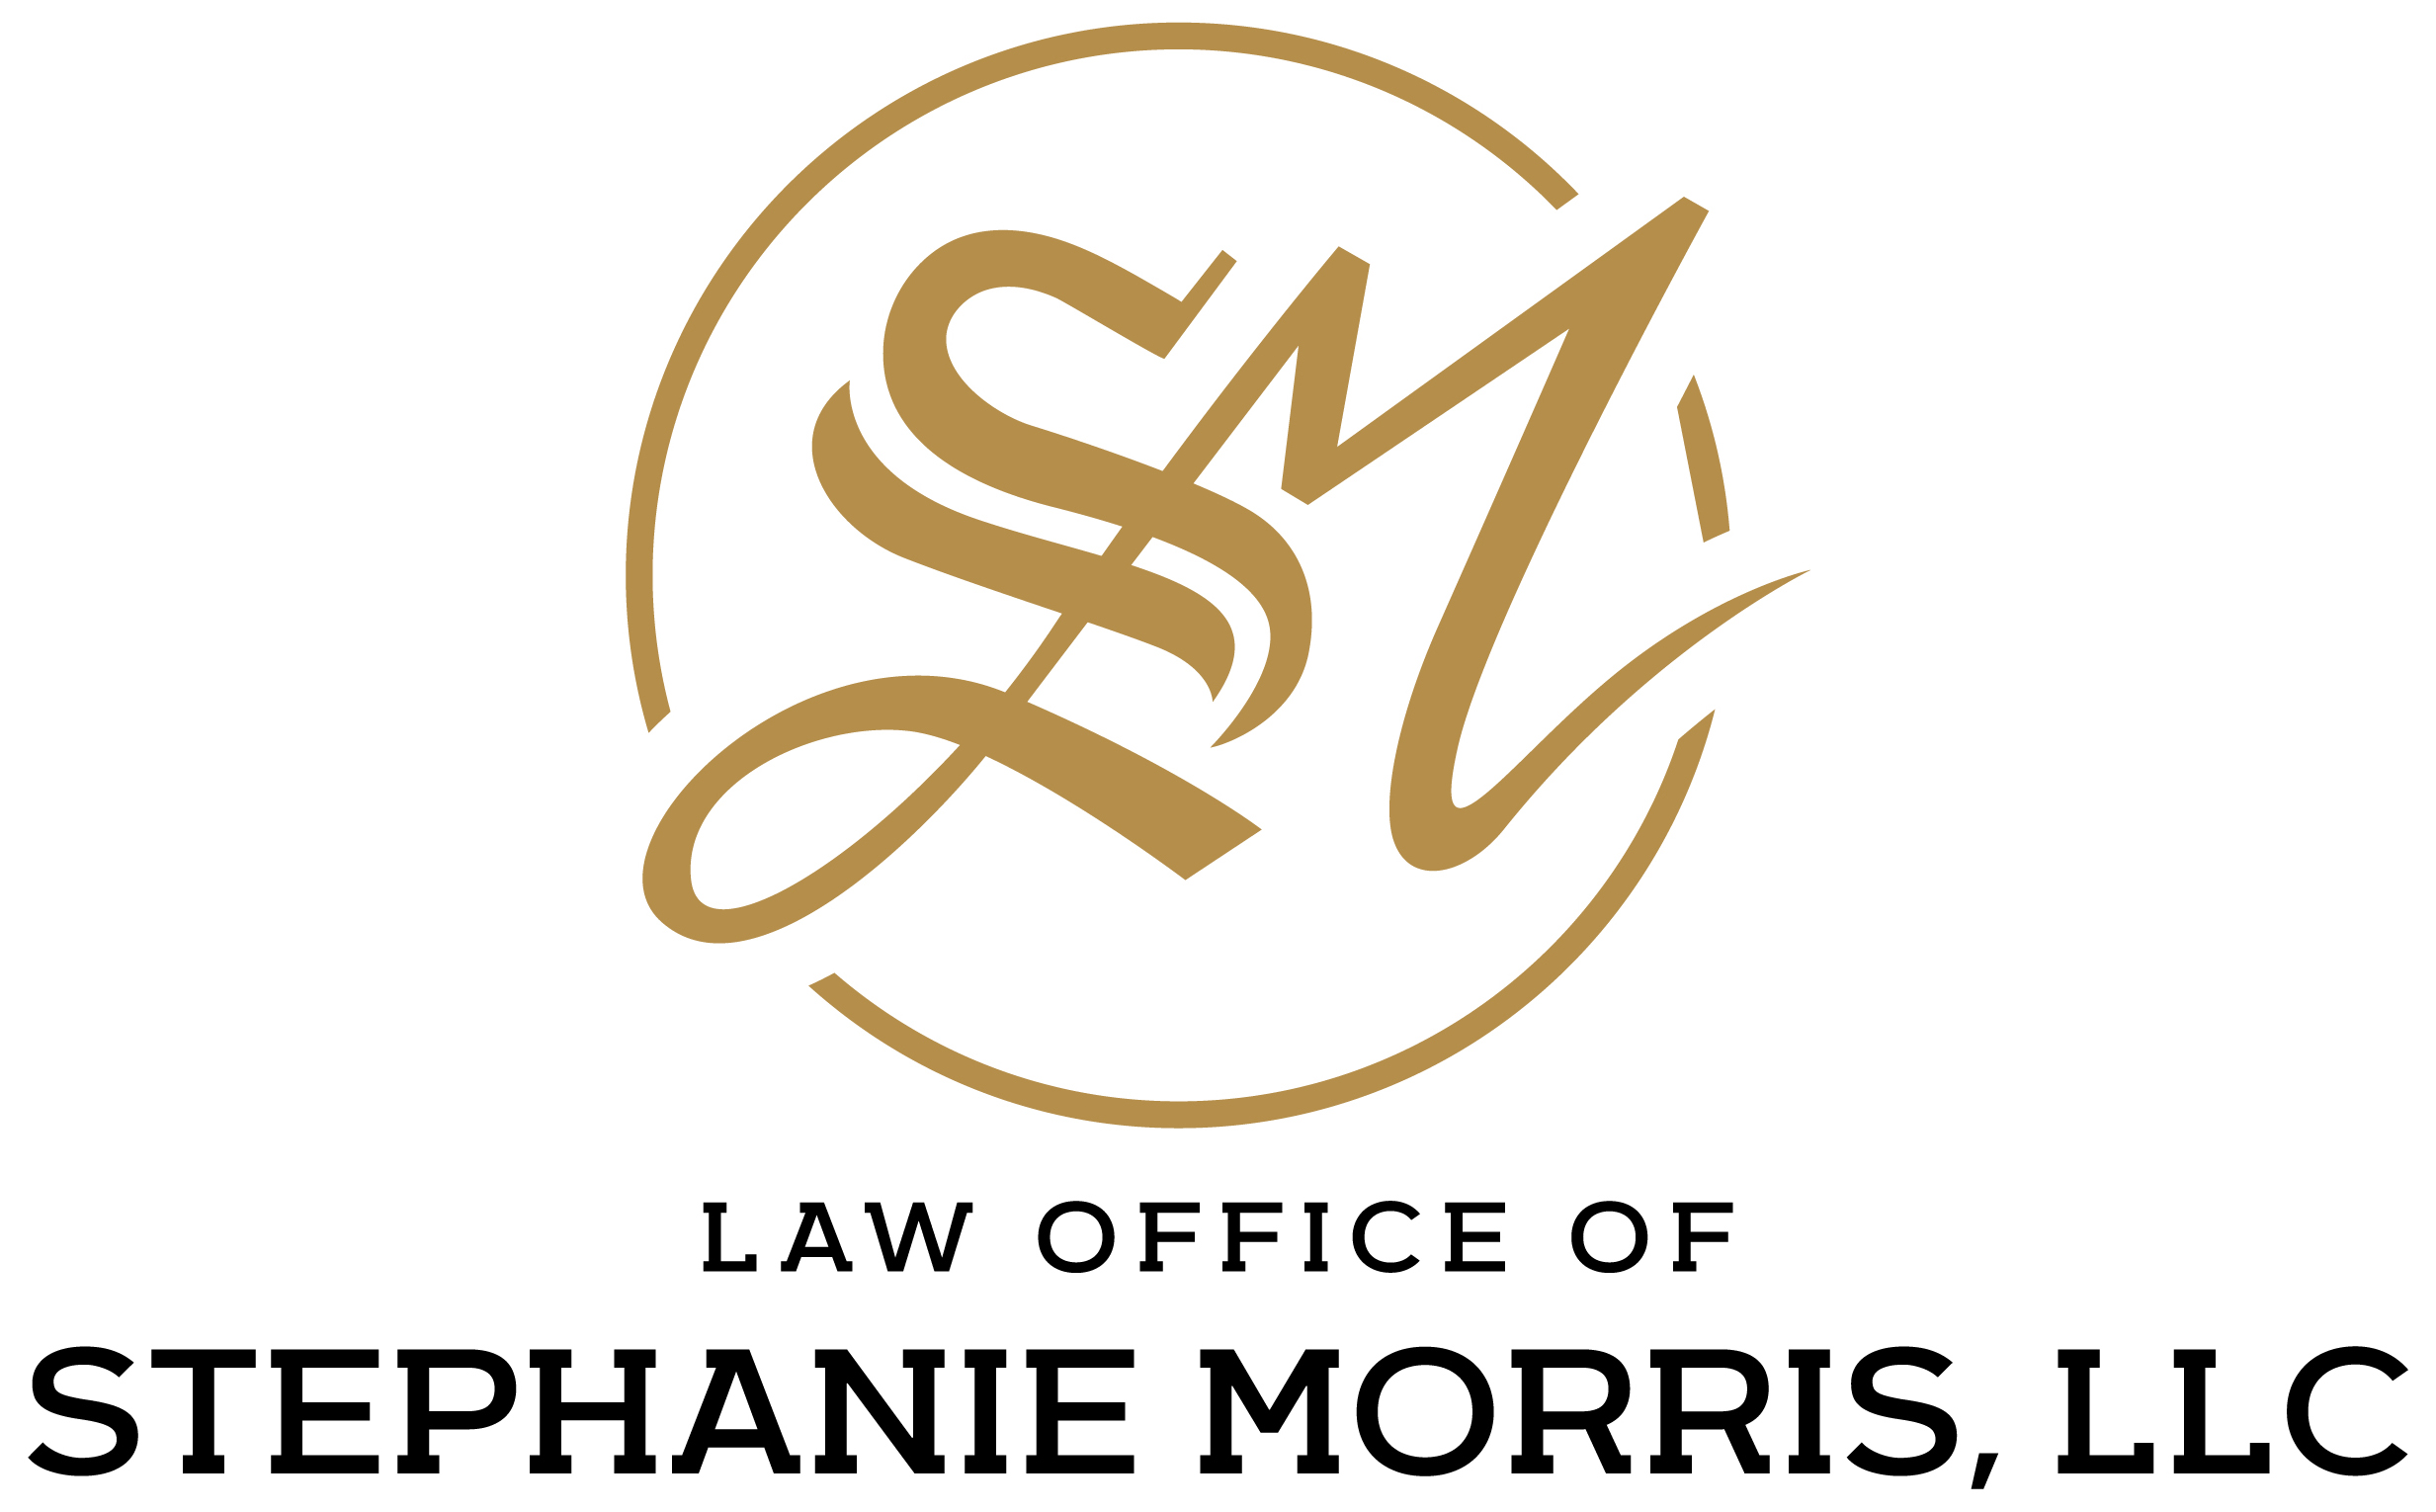 Law Office of Stephanie Morris, LLC